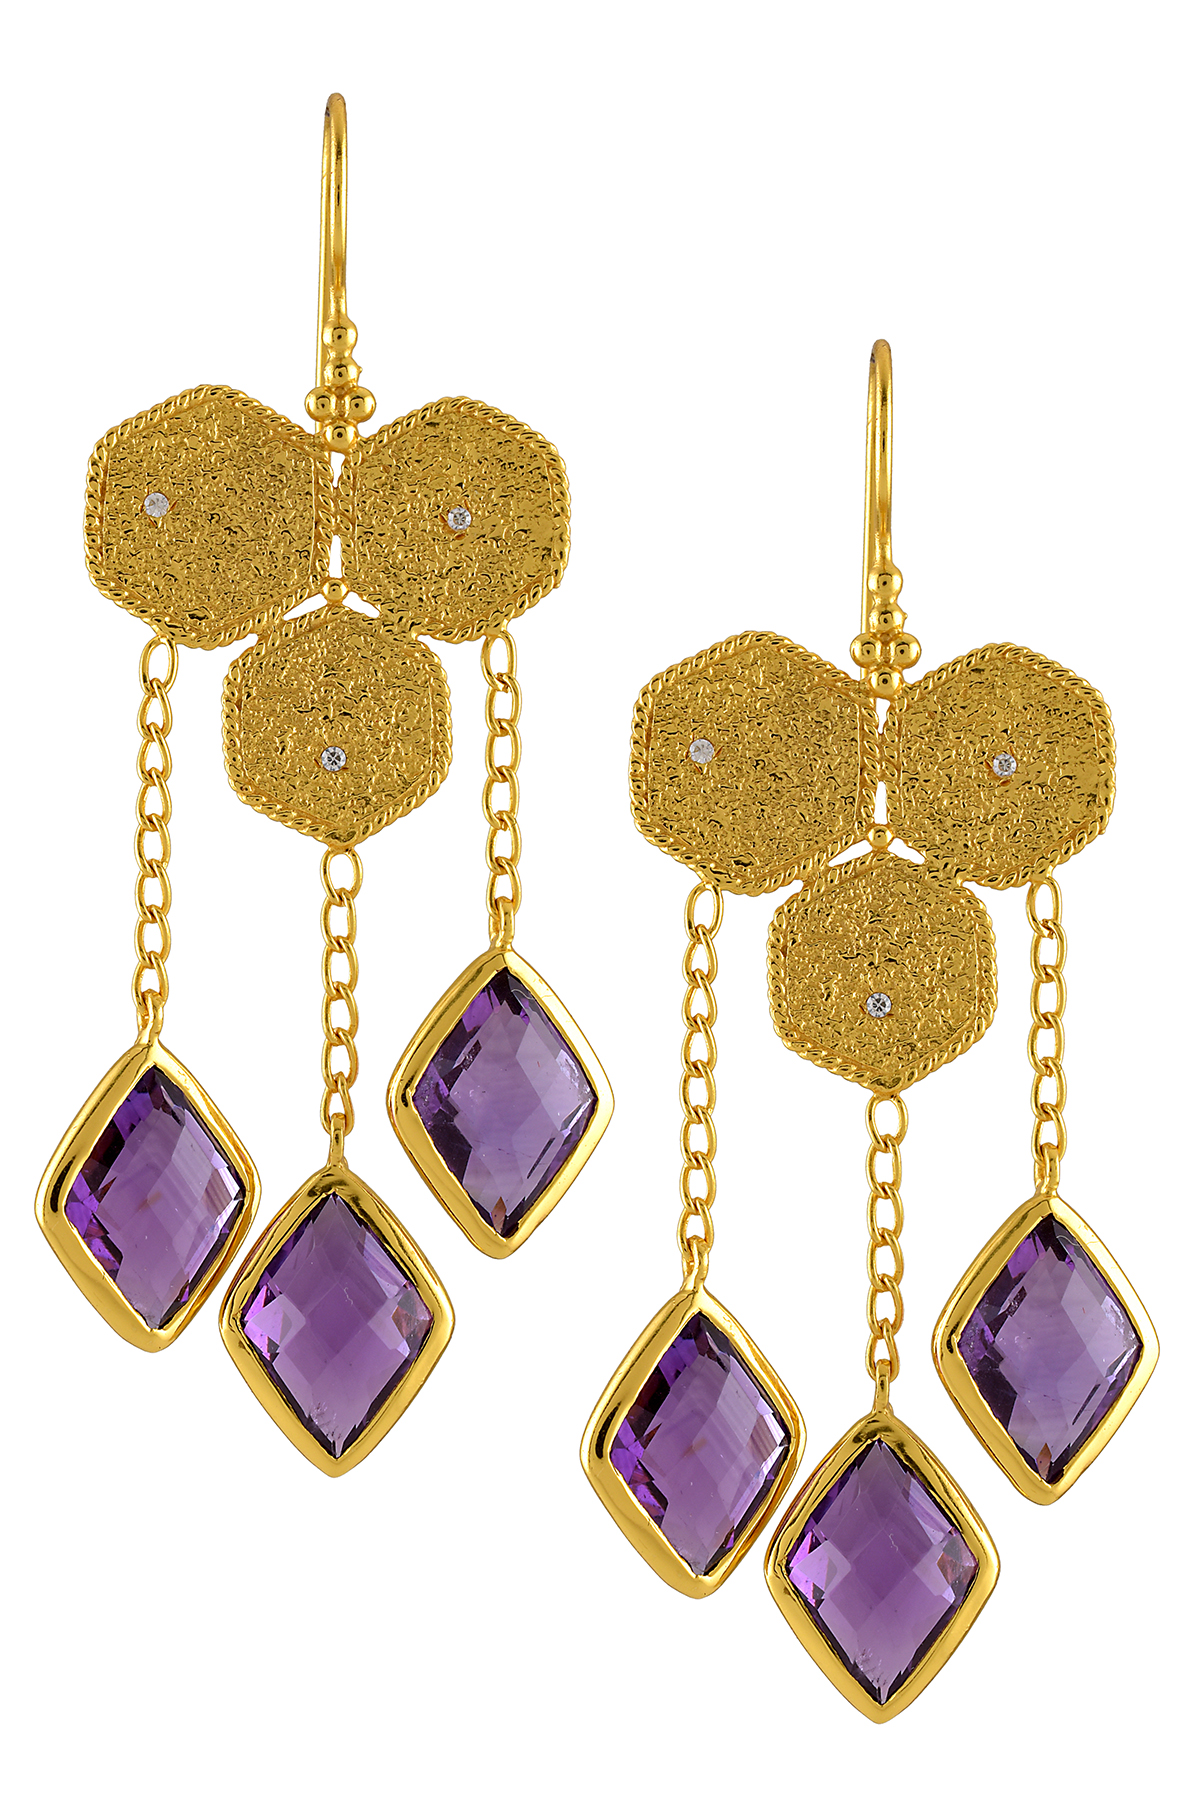 Silver Gold Plated Textured Zircon Amethyst Hanging Earrings